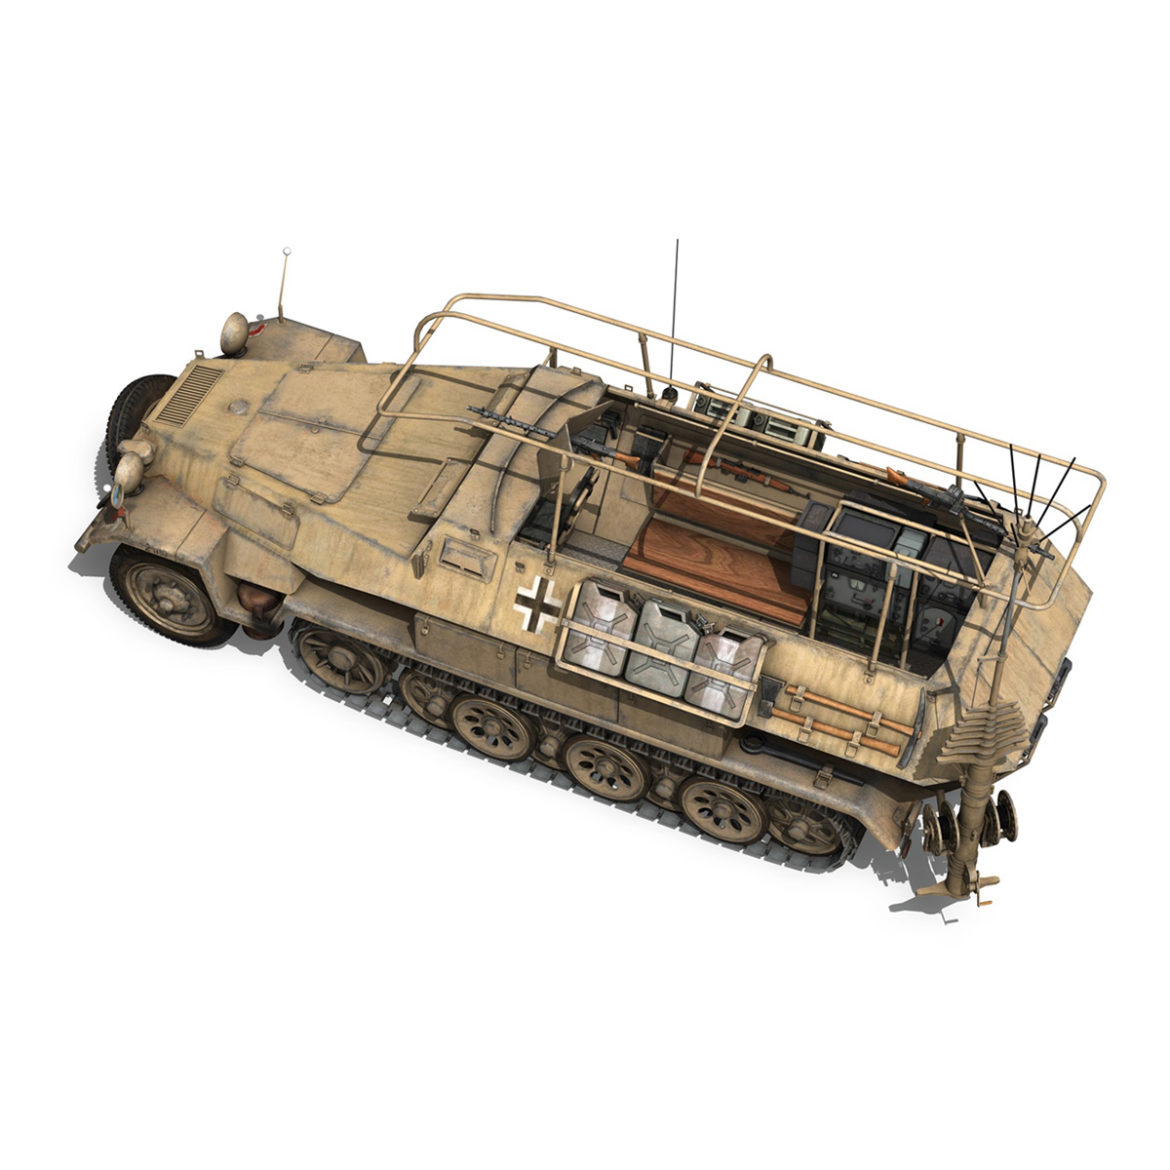 sdkfz 251 ausf.b – communications vehicle – 15pd 3d model 3ds fbx lwo lw lws obj c4d 305990